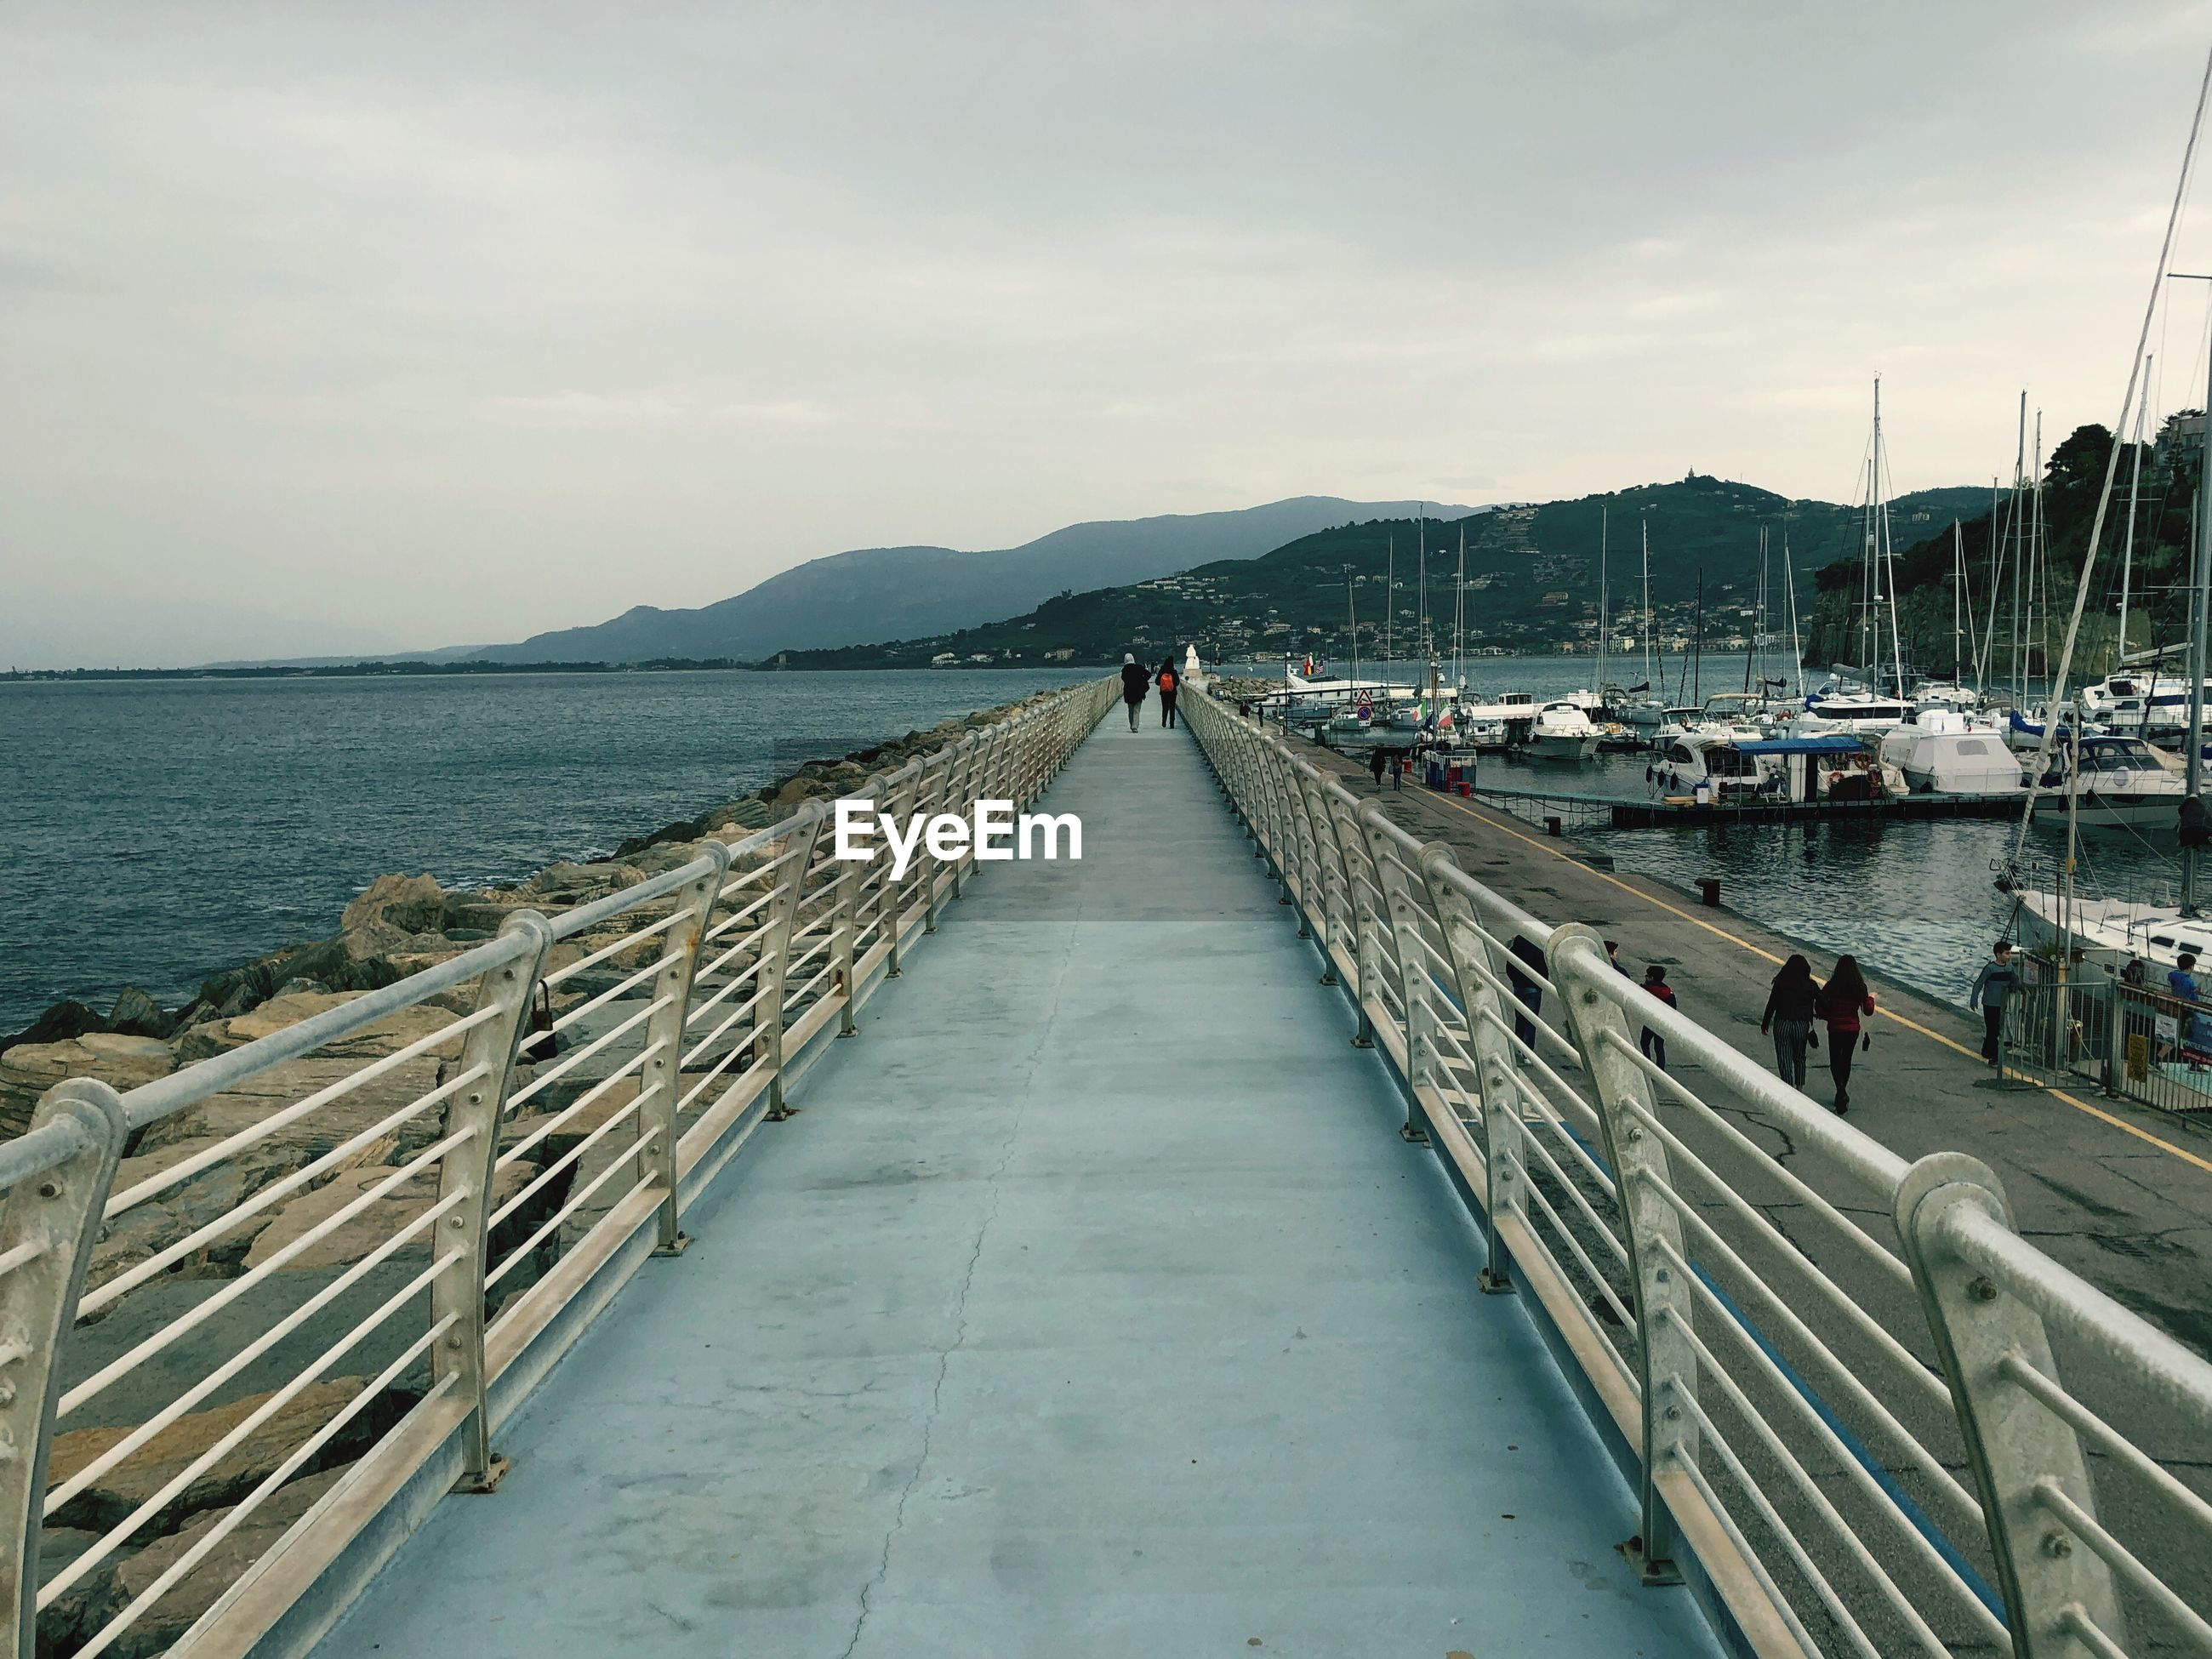 SCENIC VIEW OF SEA AND PIER AGAINST SKY